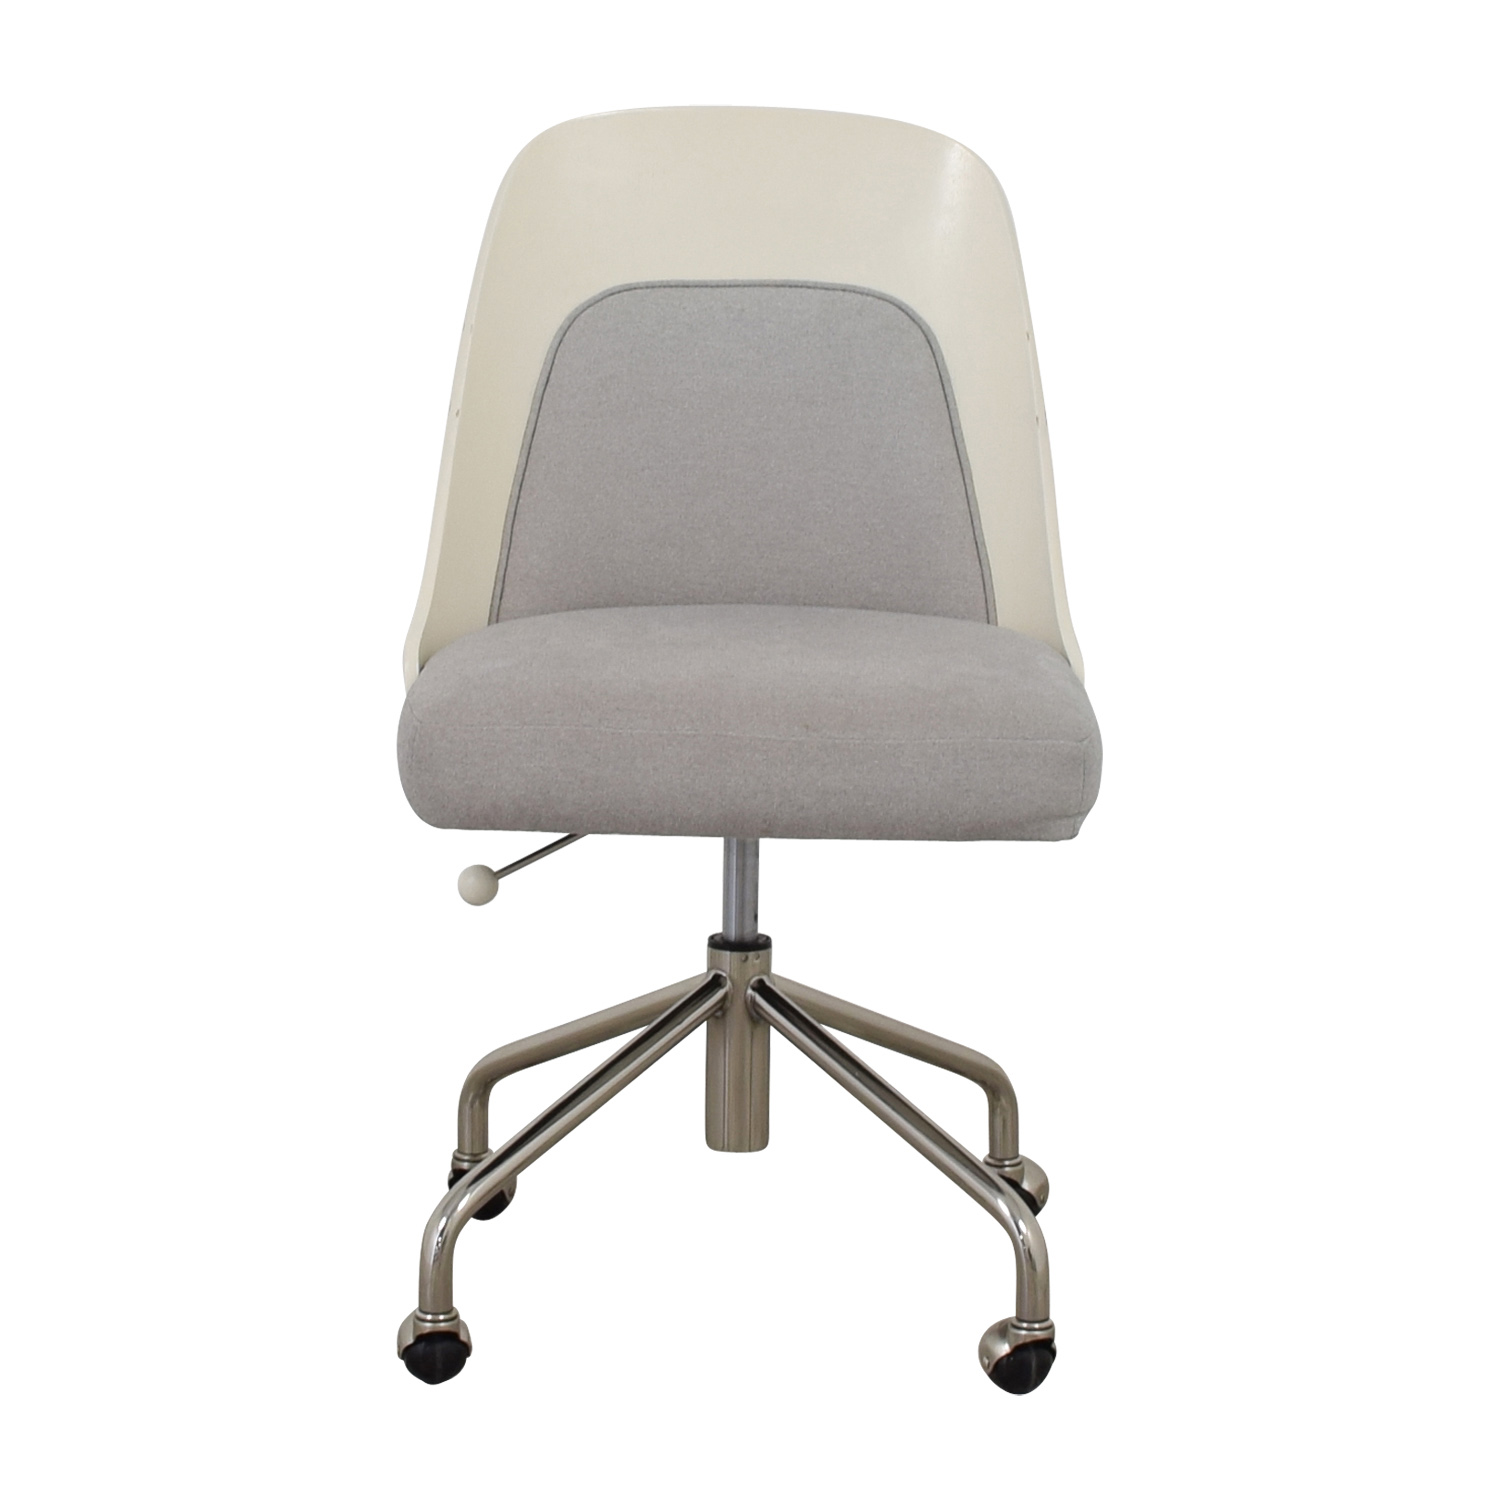 West Elm Bentwood White and Grey Office Chair West Elm